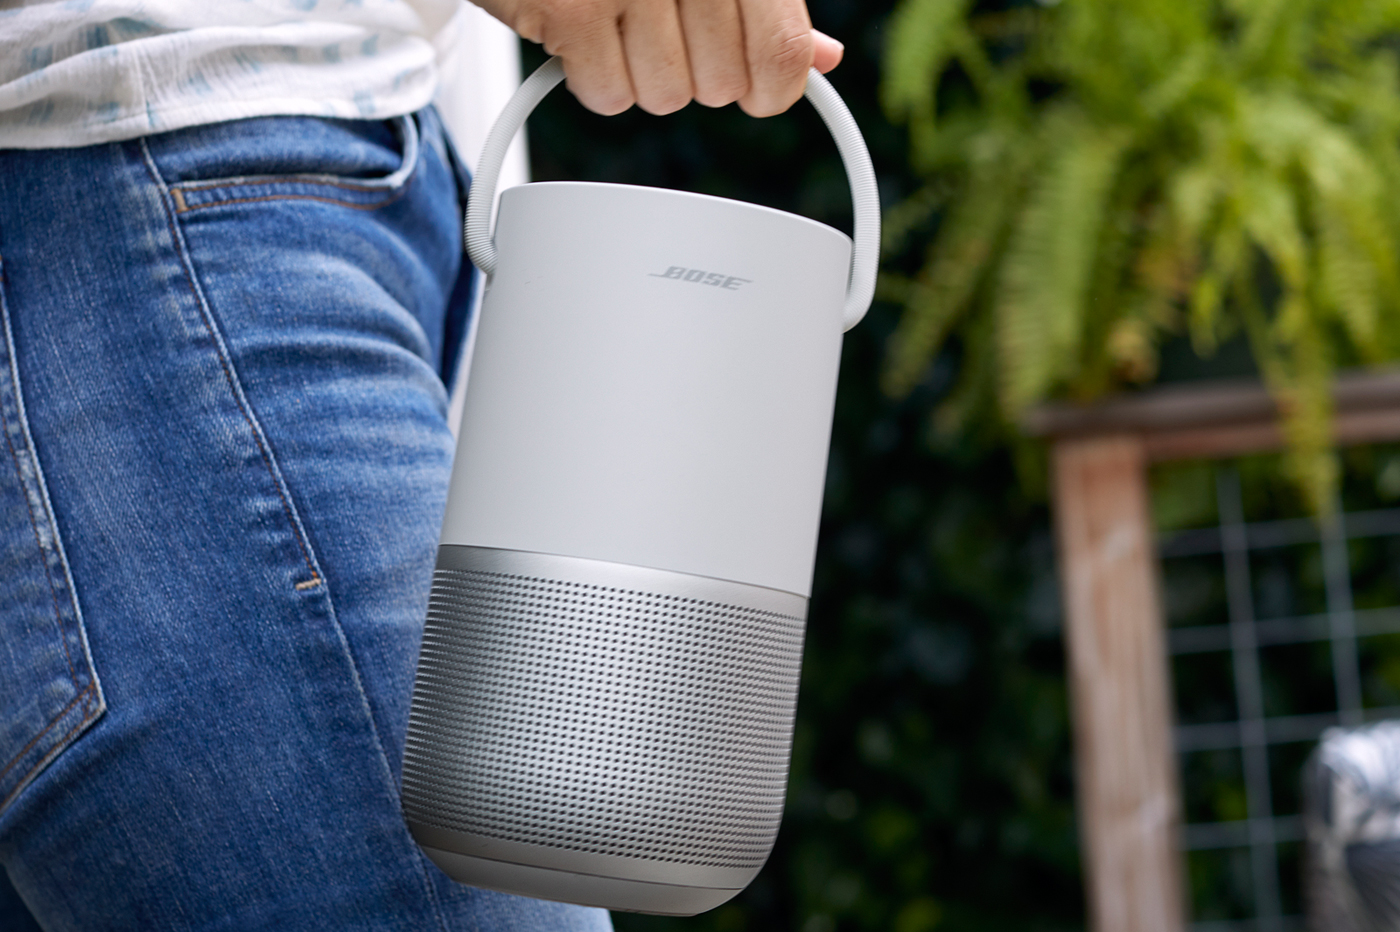 Bose Portable Home Speaker : l'enceinte nomade compatible Alexa, Google Assistant, Spotify Connect et AirPlay 2